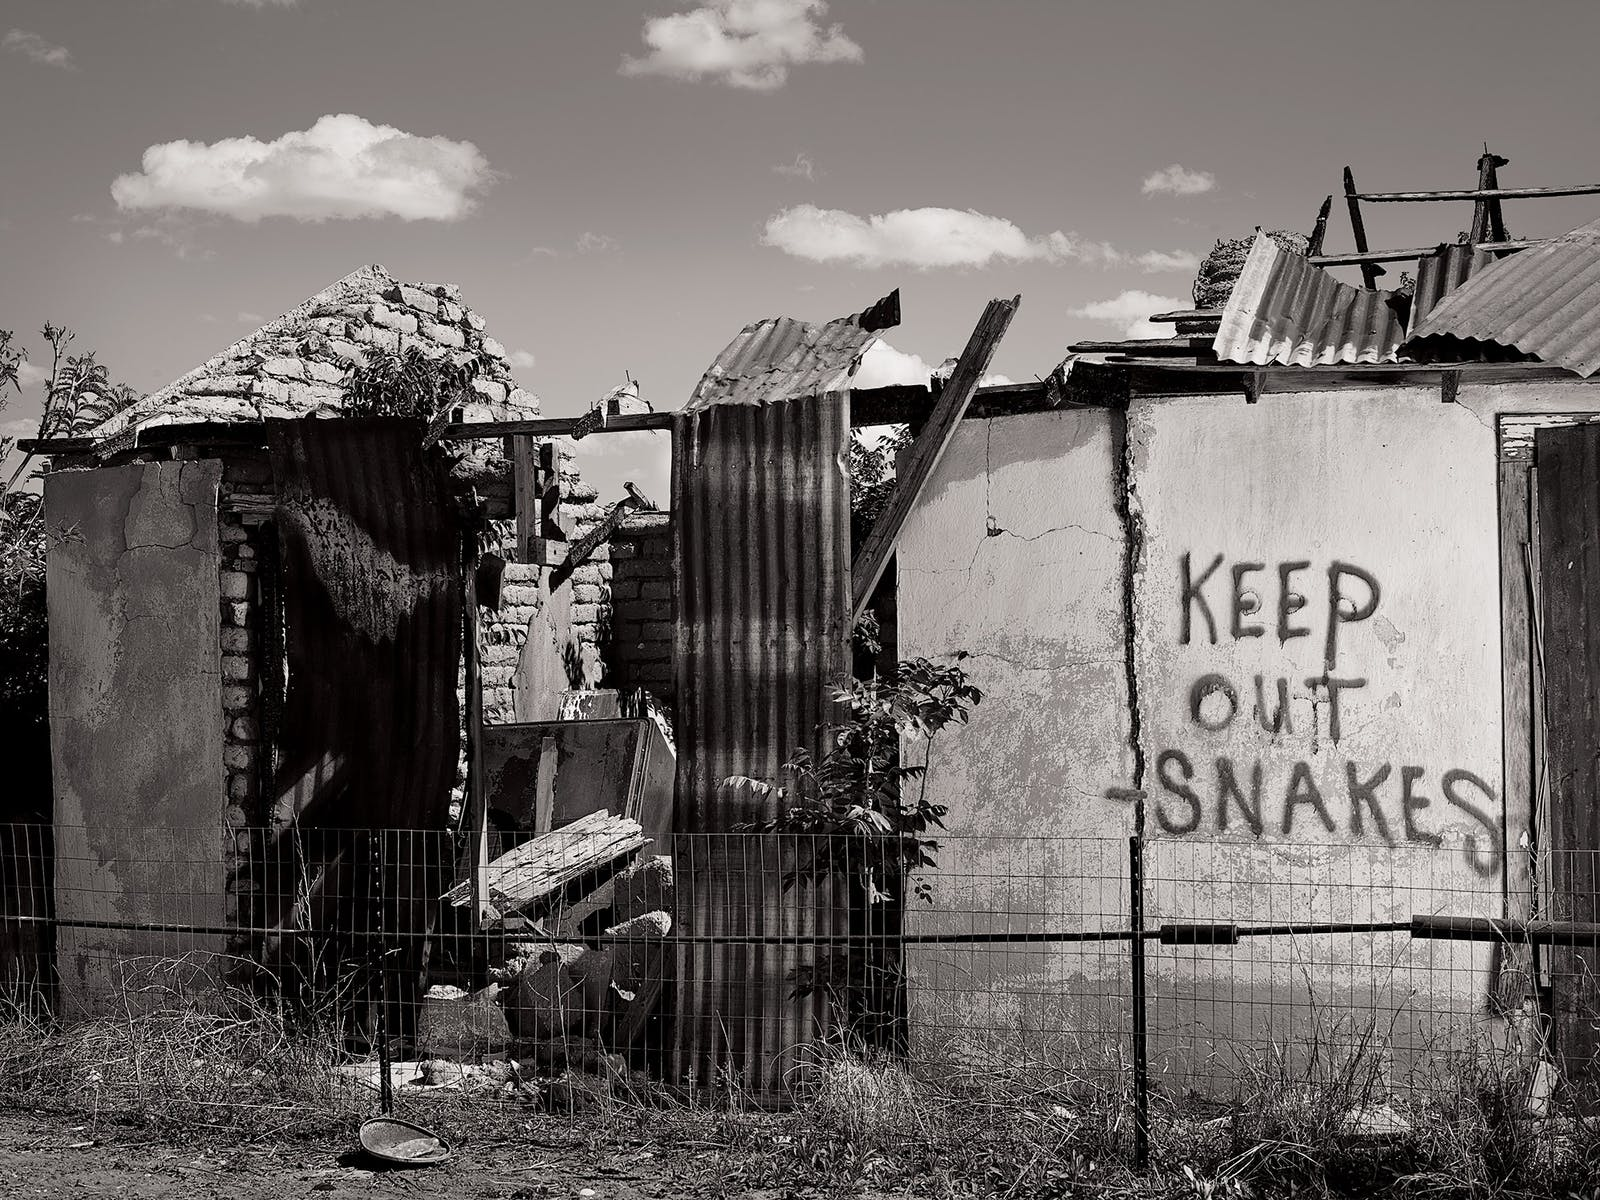 """KEEP OUT SNAKES,"" written in spray paint on an adobe ruin in Marfa."